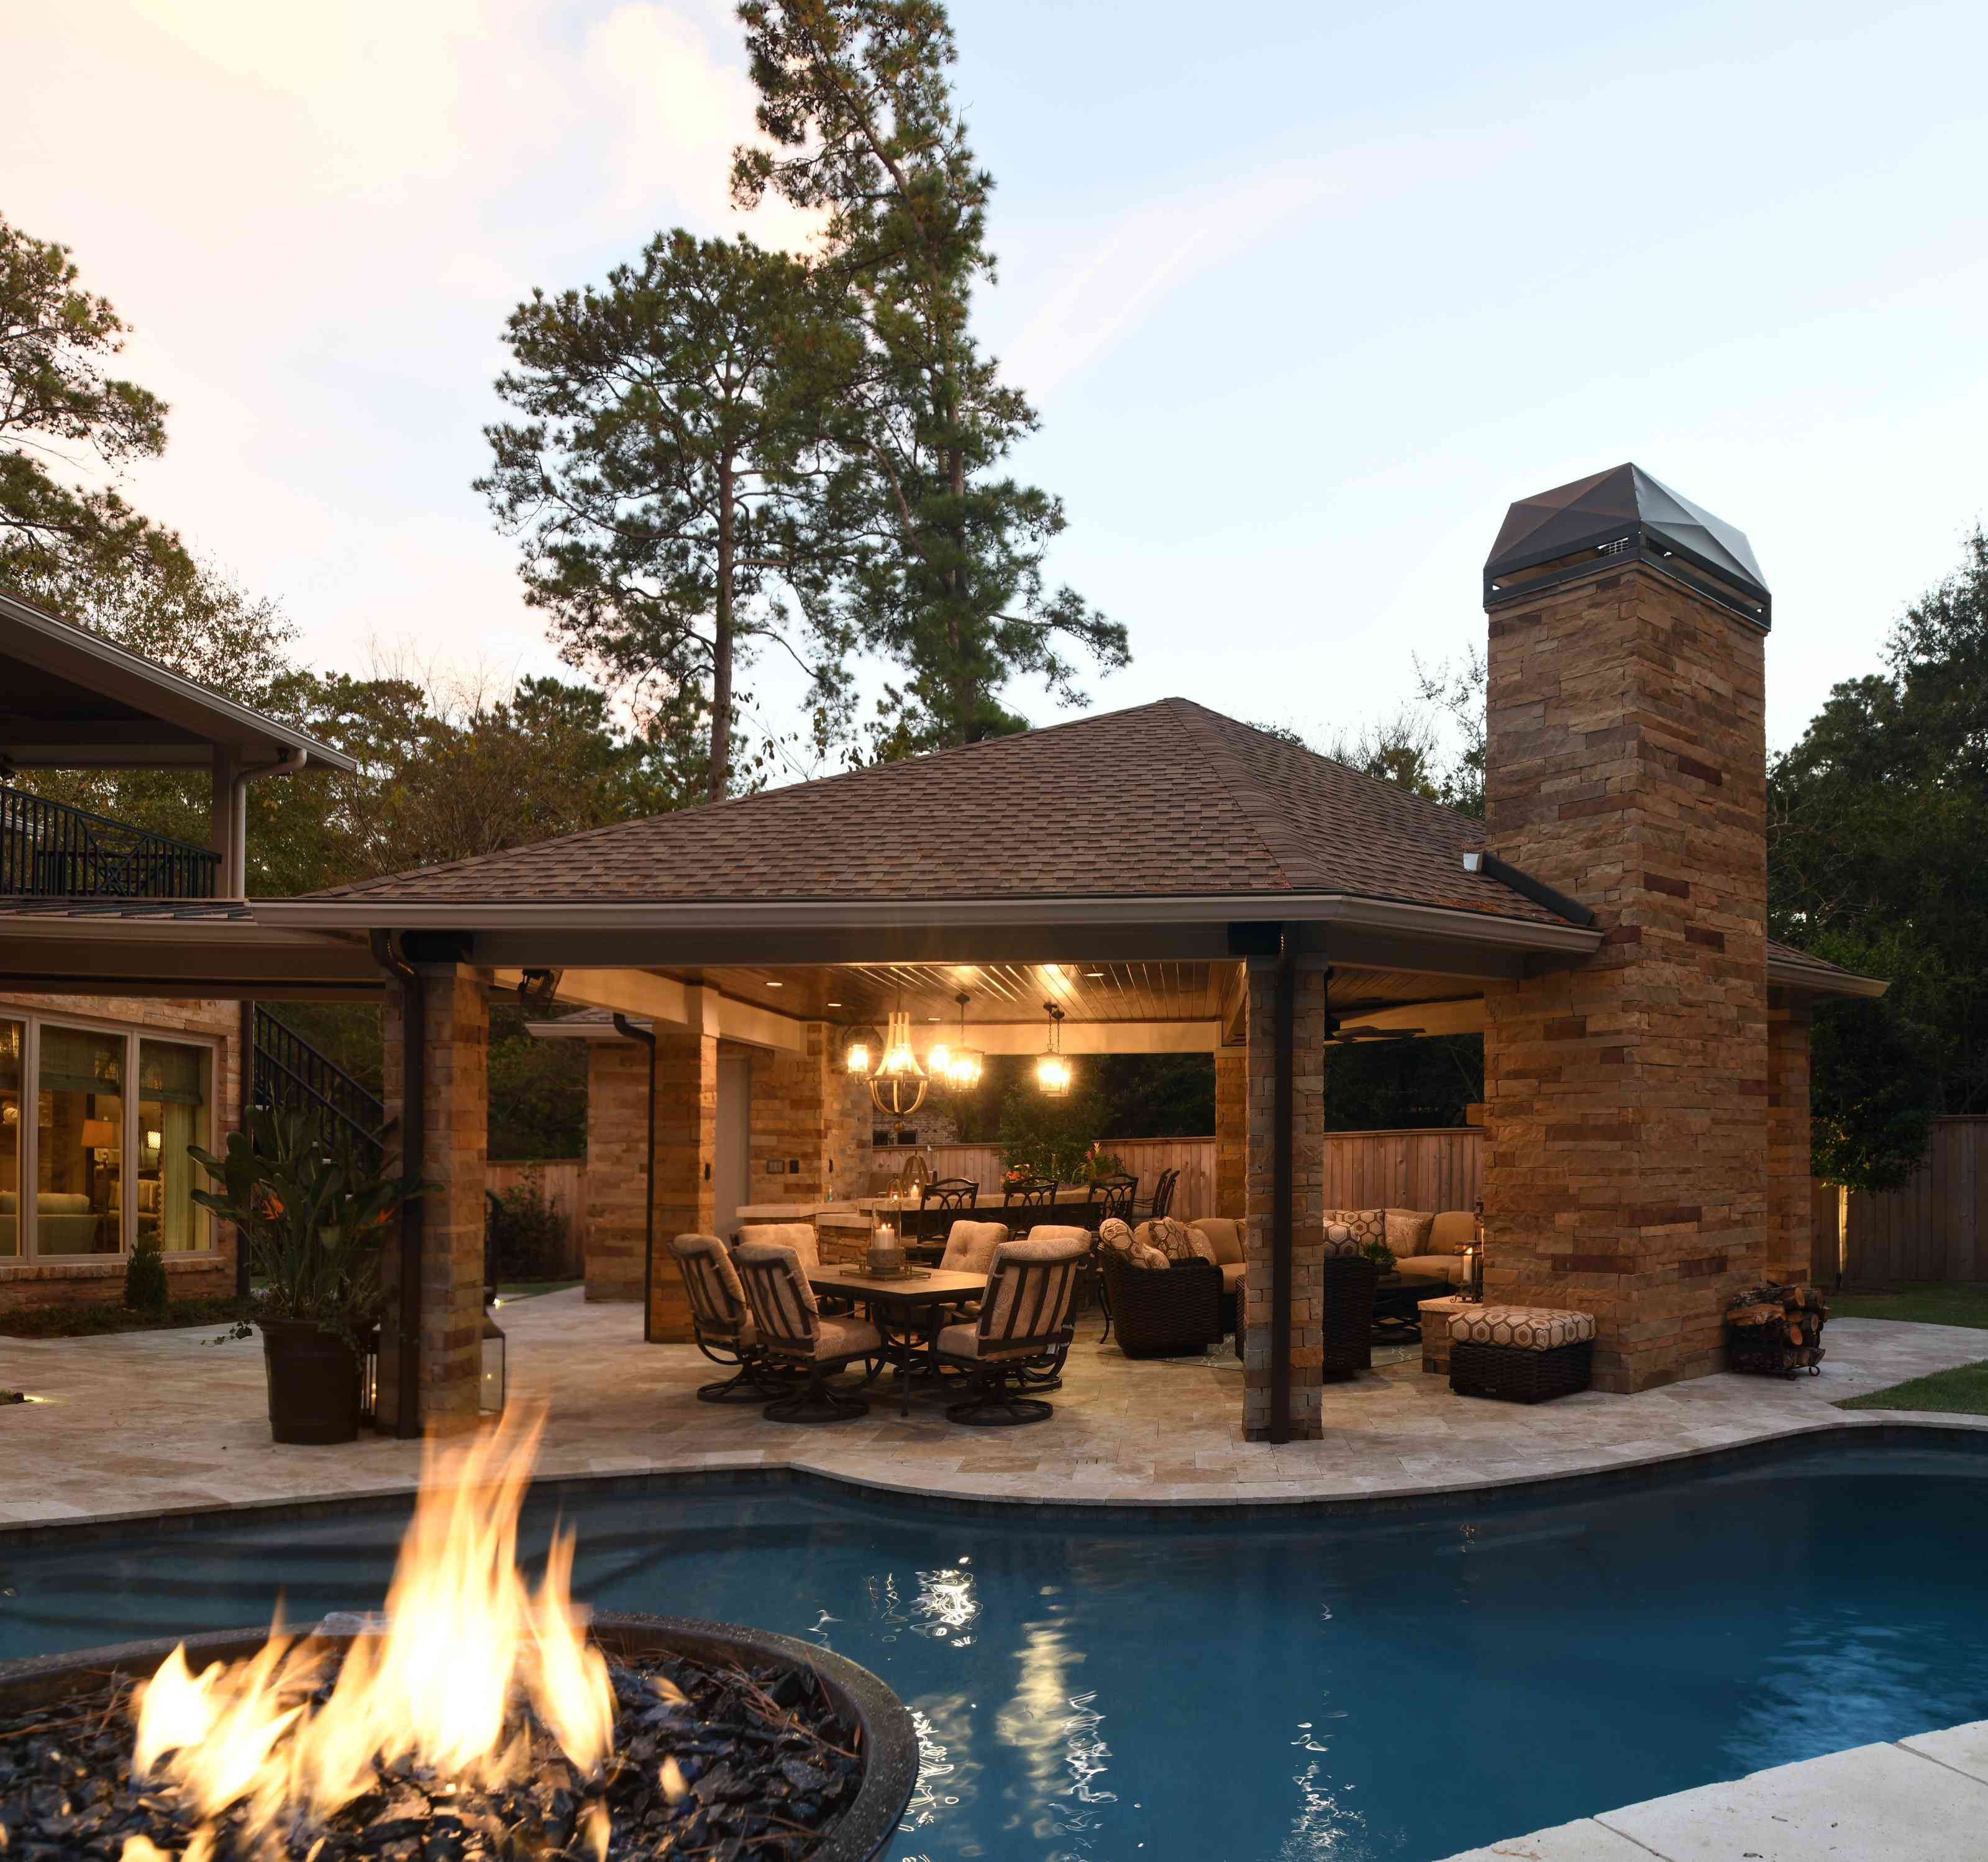 patio space features lighting, a fire pit, and a pool